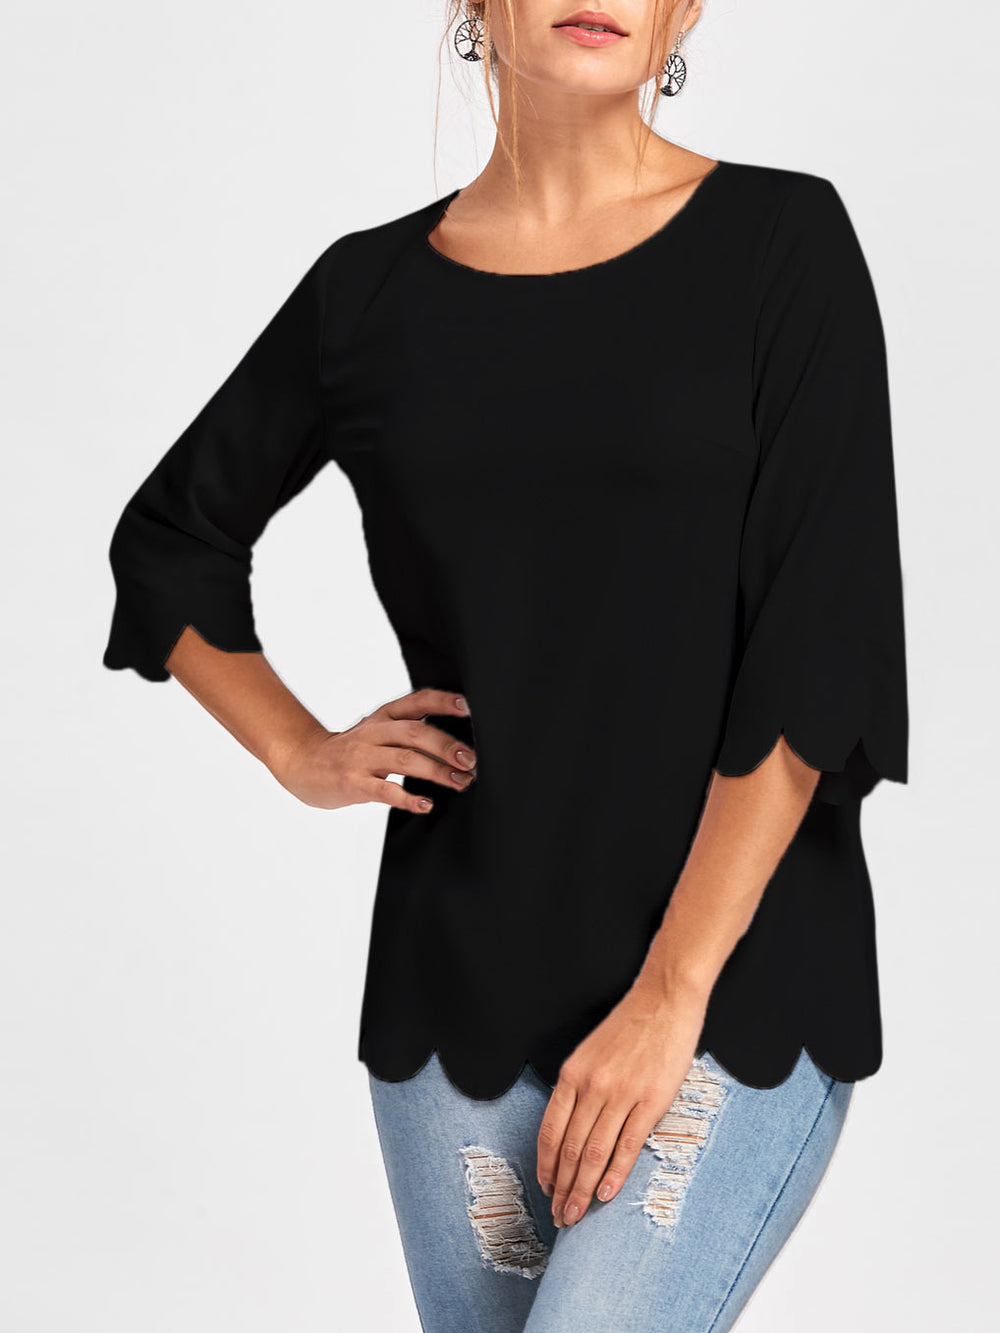 Crew Neck Half Sleeve Solid Shirts & Tops